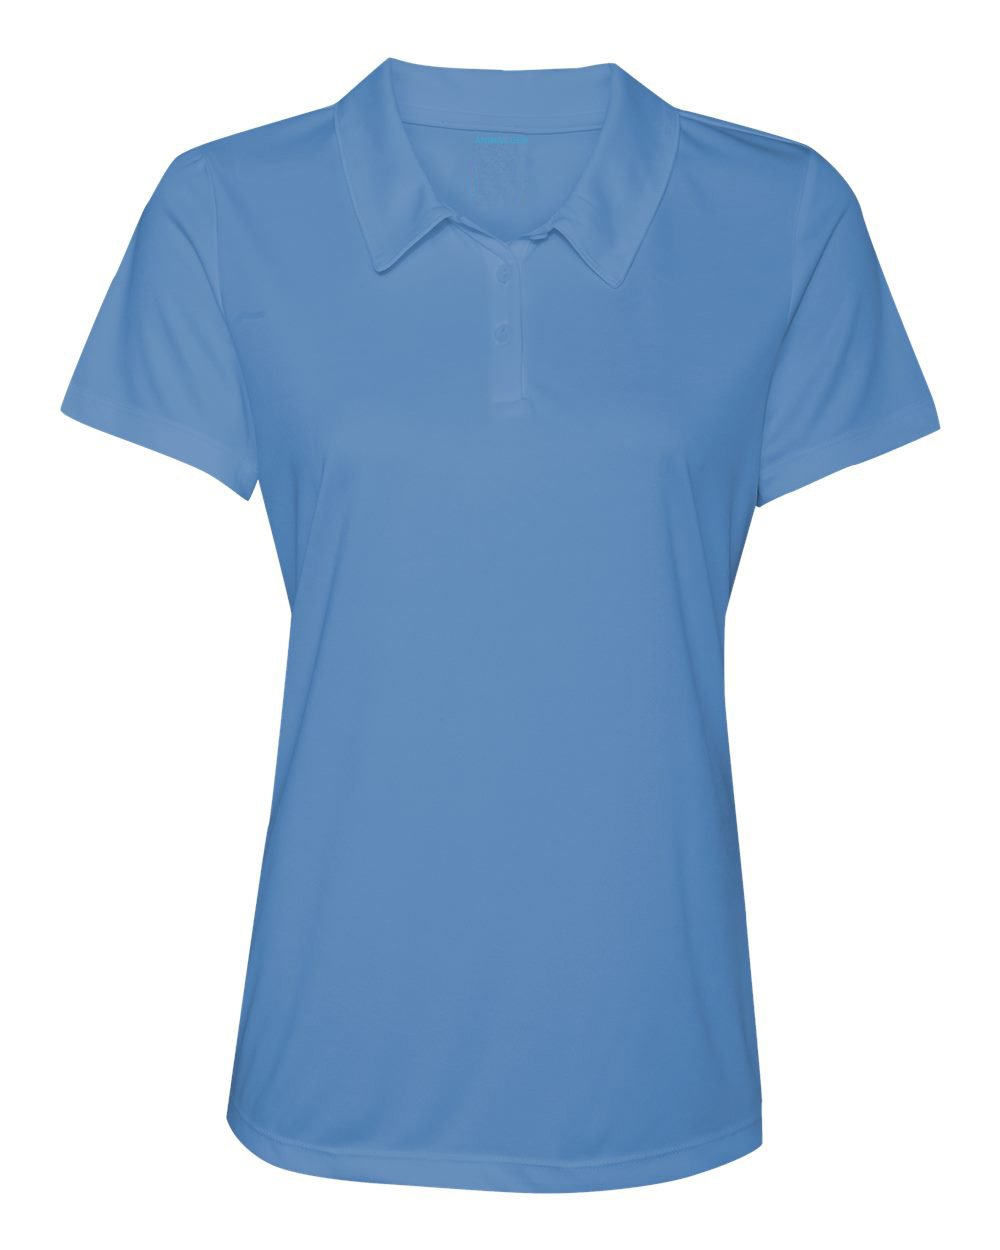 Women's Dry-Fit Golf Polo Shirts 3-Button Golf Polo's in 20 Colors XS-3XL Shirt LTBLUE-XS